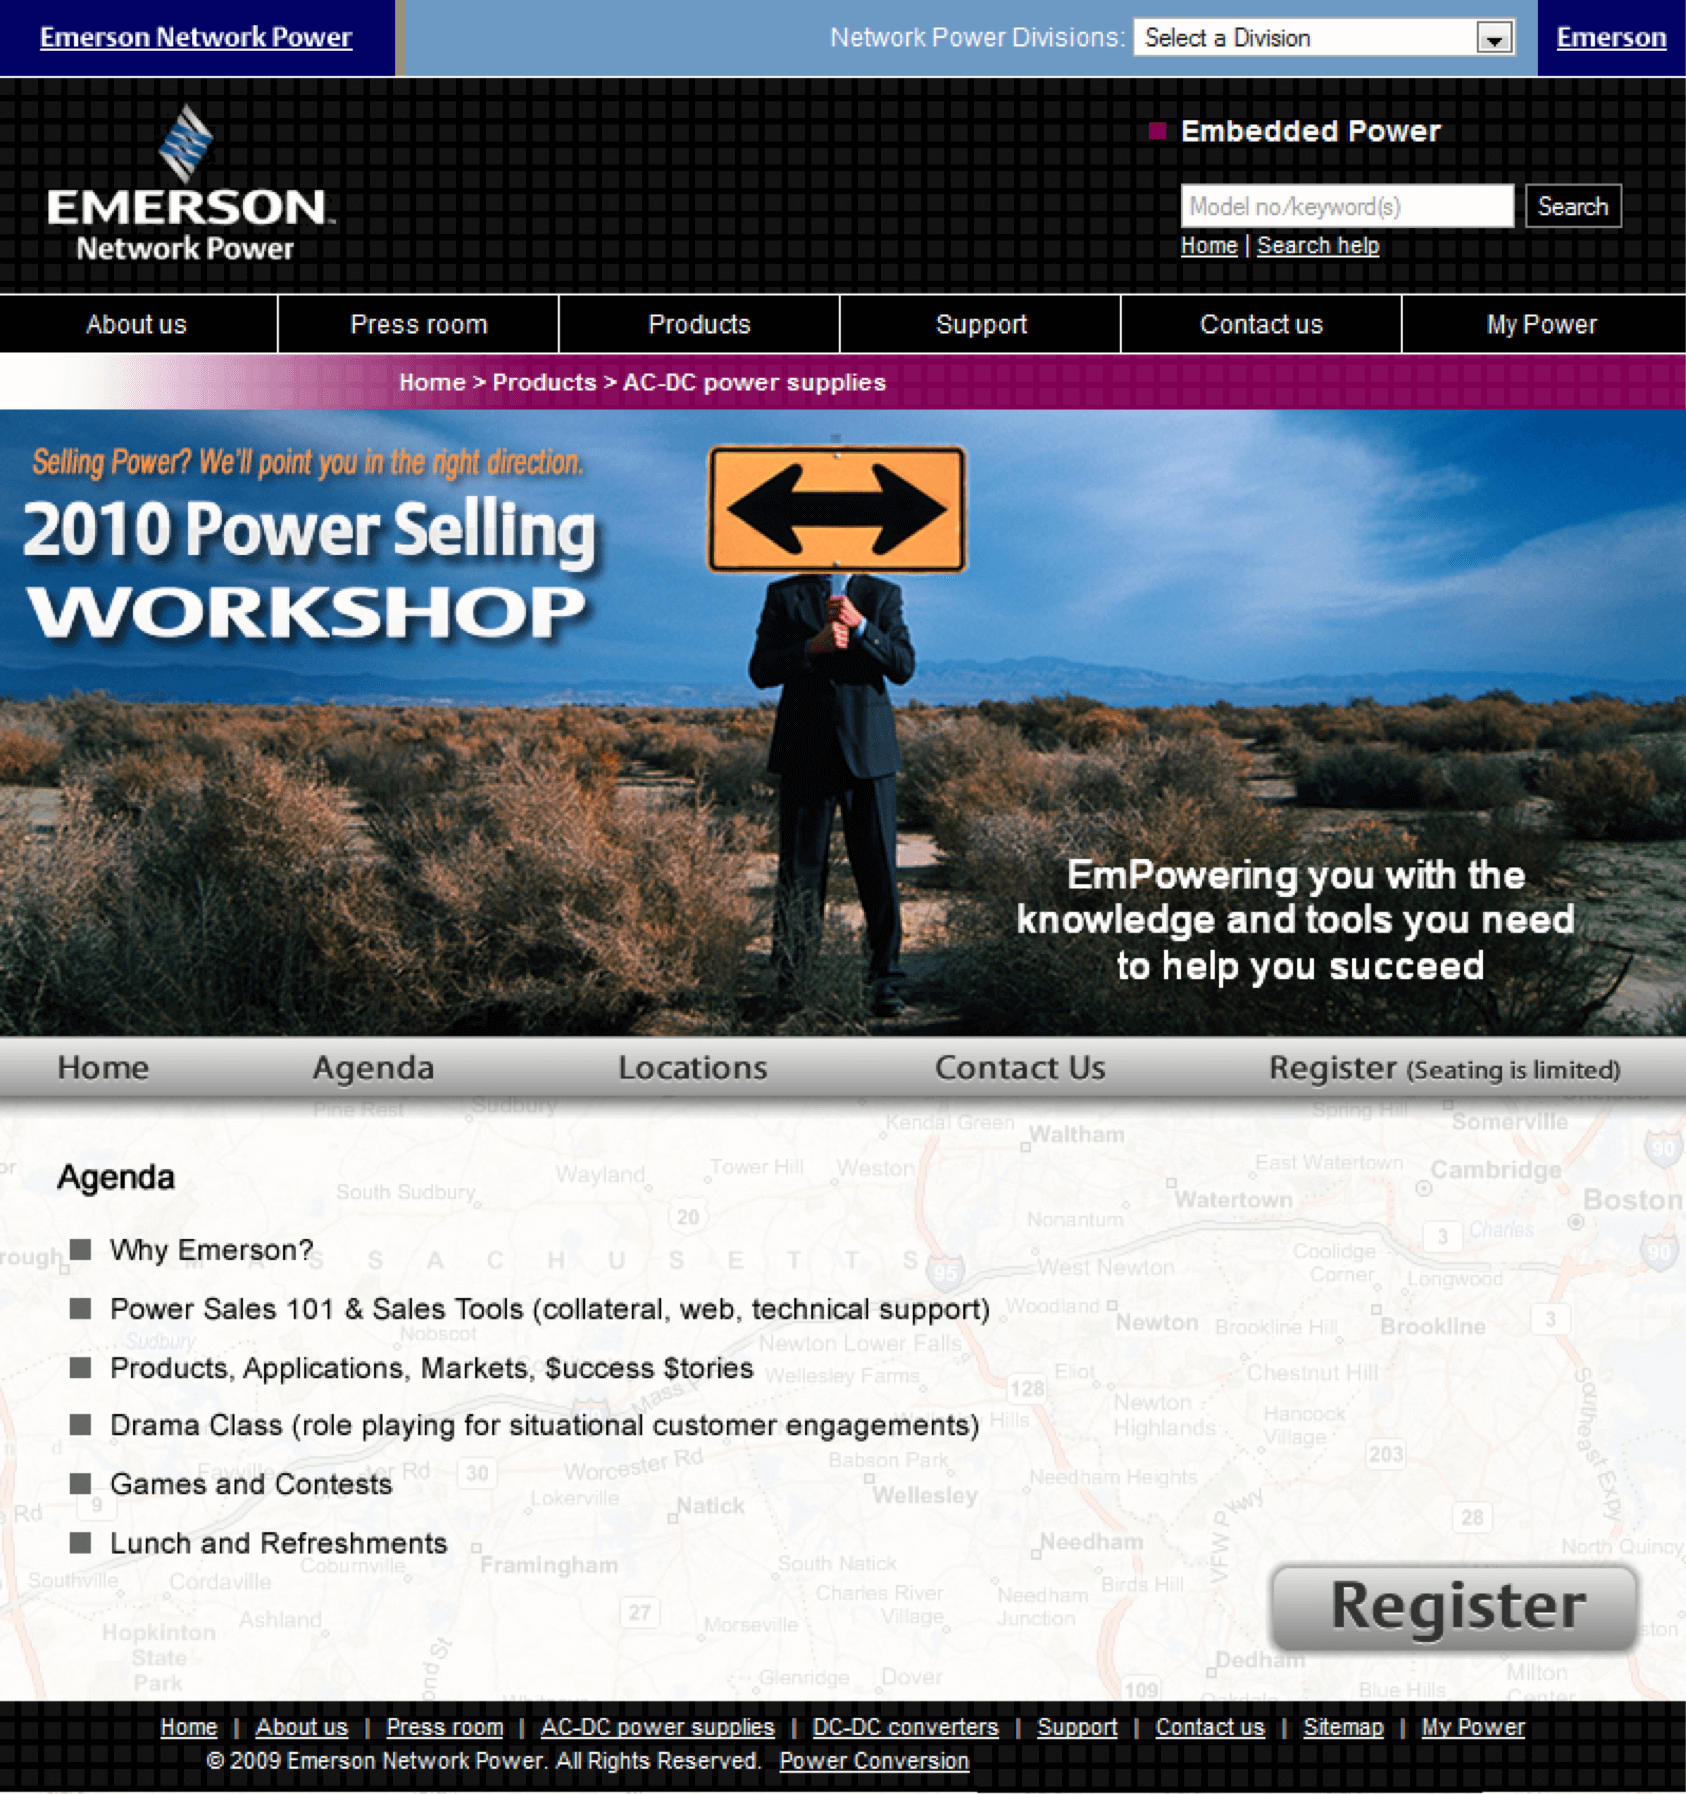 Emerson-AC-DC-Power-Supplies-Conference-Roadshow-Website-Design-Conference-Agenda